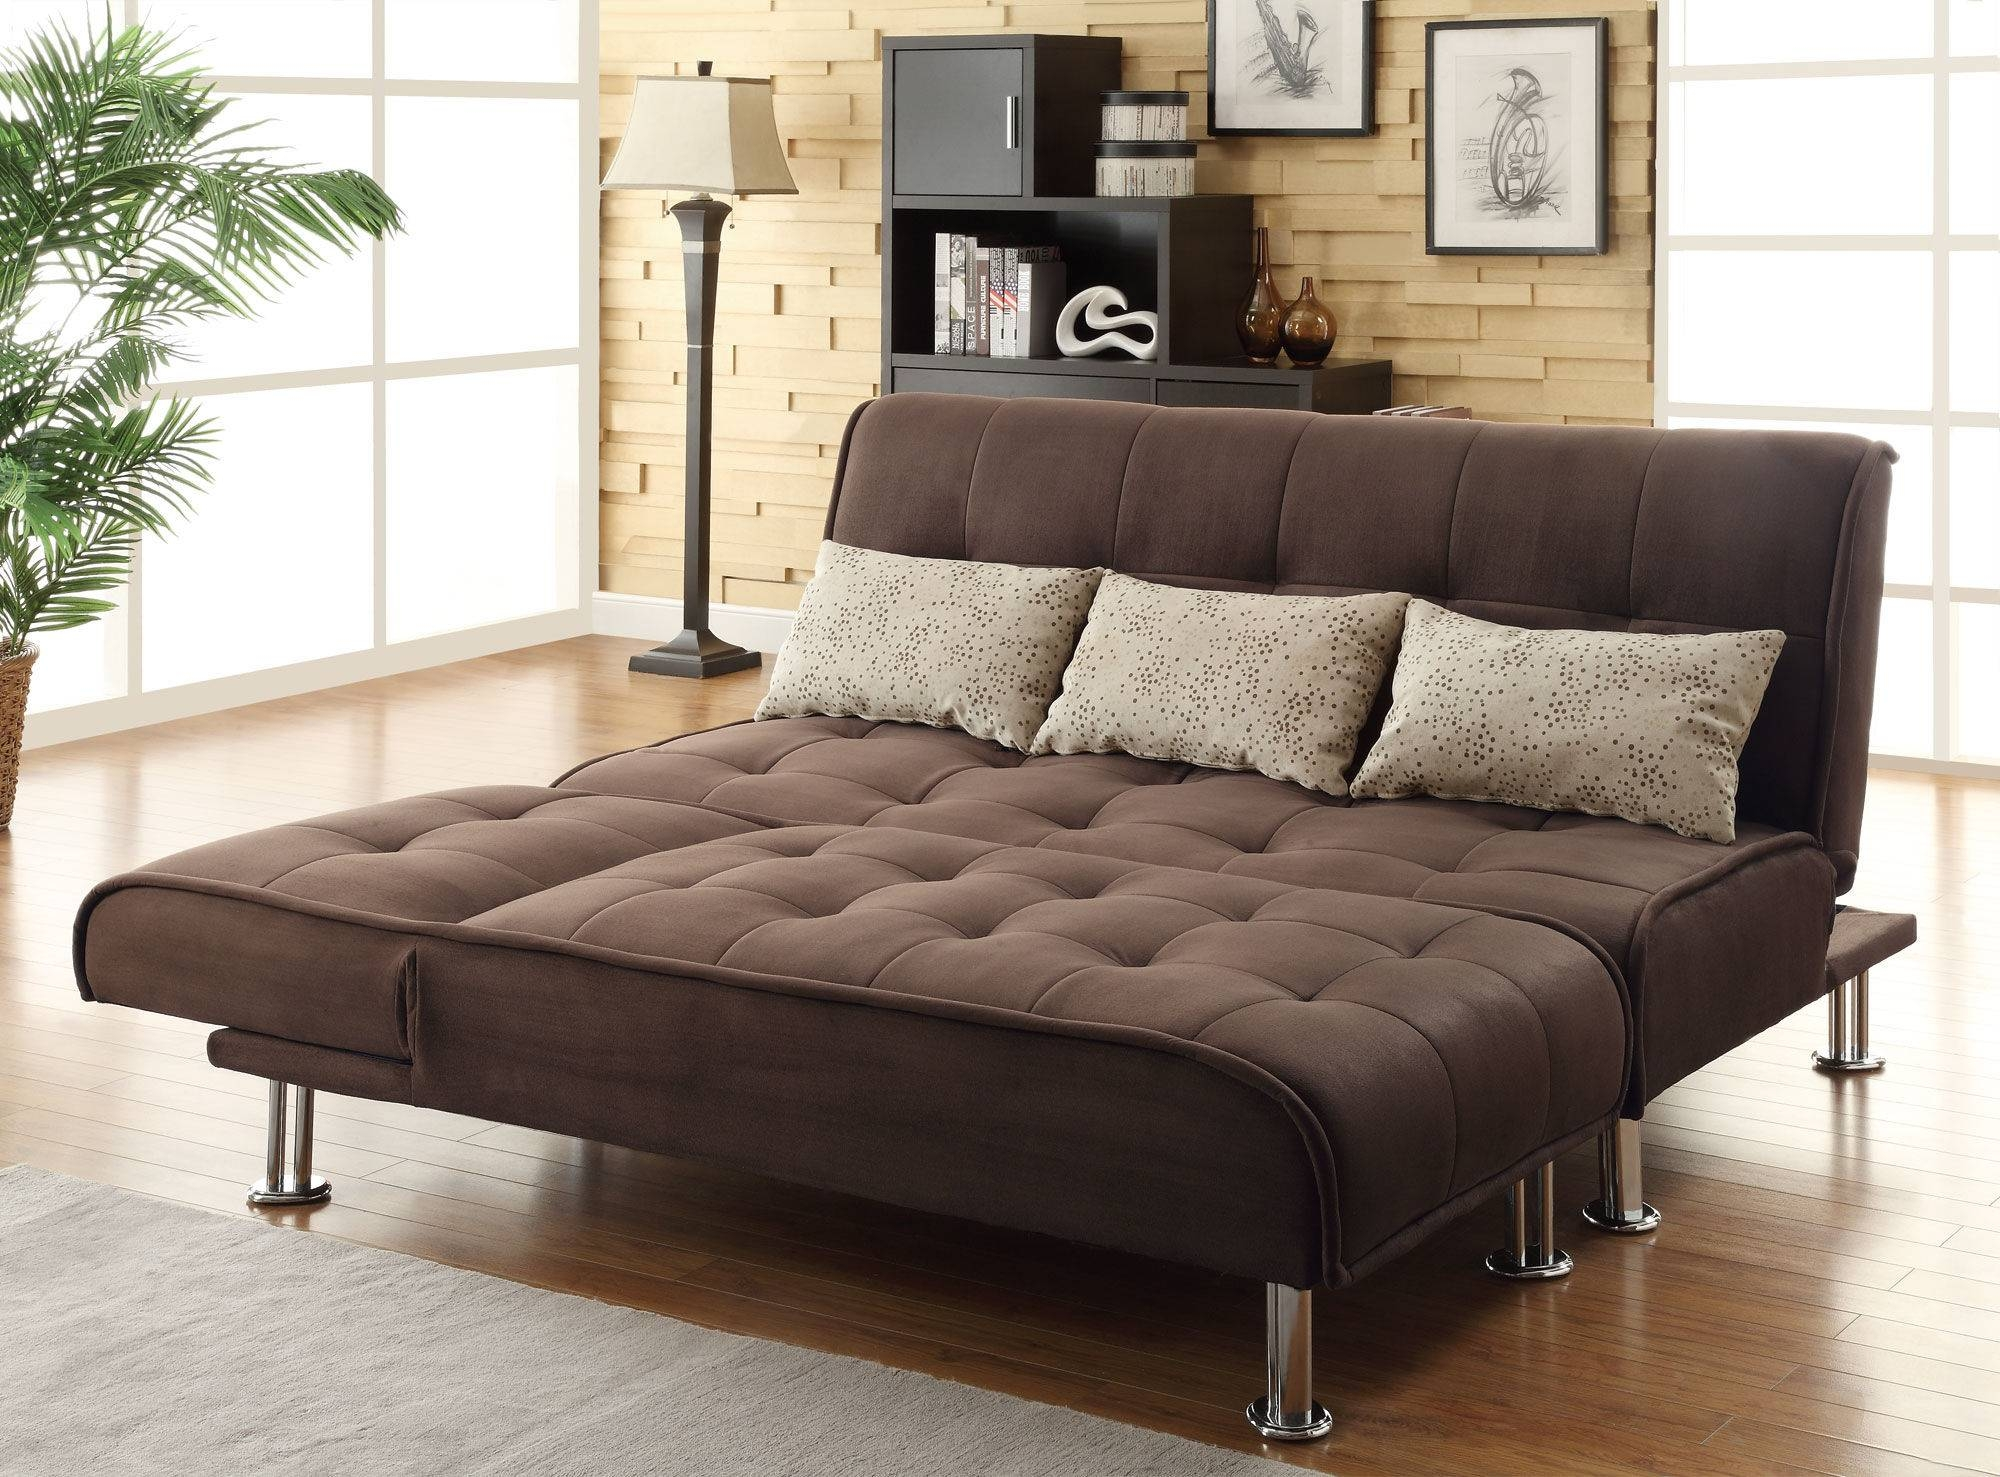 30 Ideas of Queen Size Sofa Bed Sheets